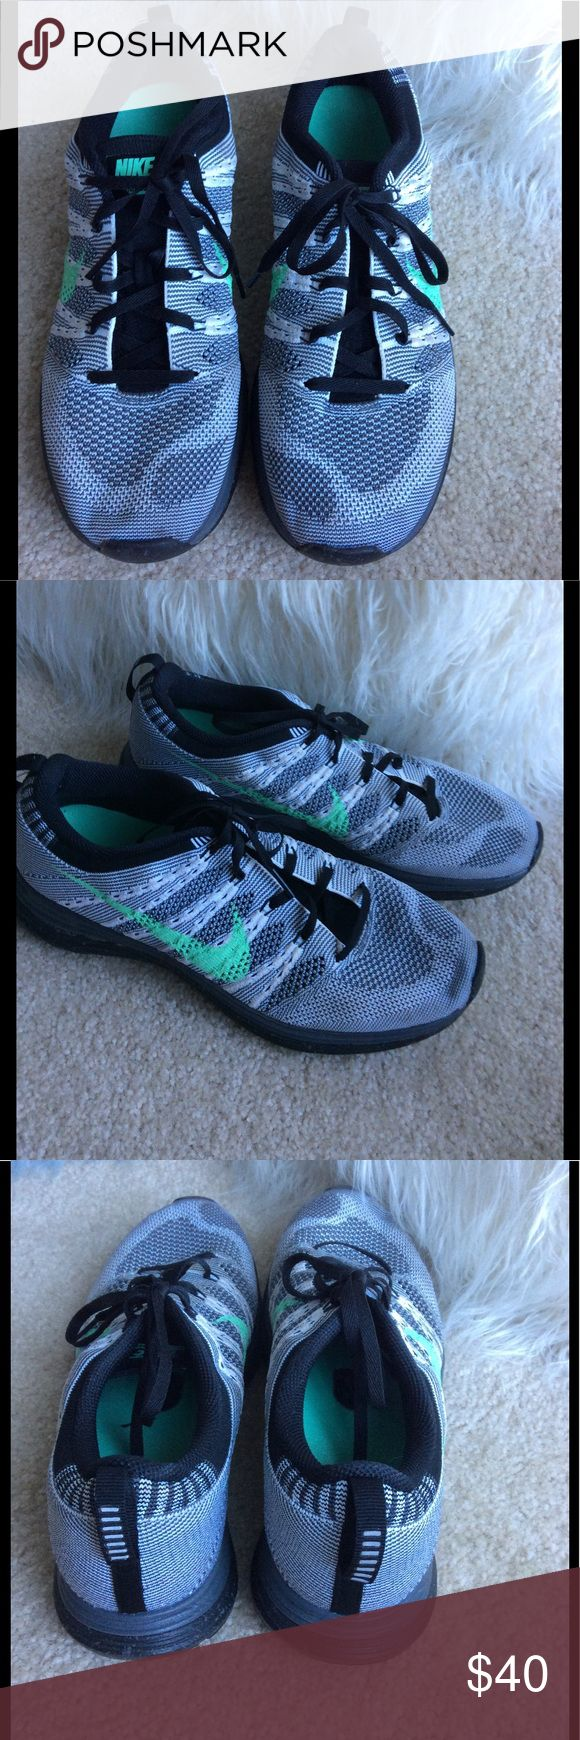 Nike Flyknit Lunar 1 Barely worn. Still look new.  Black and white flyknit fabric. Mint green logo. Nike Shoes Sneakers